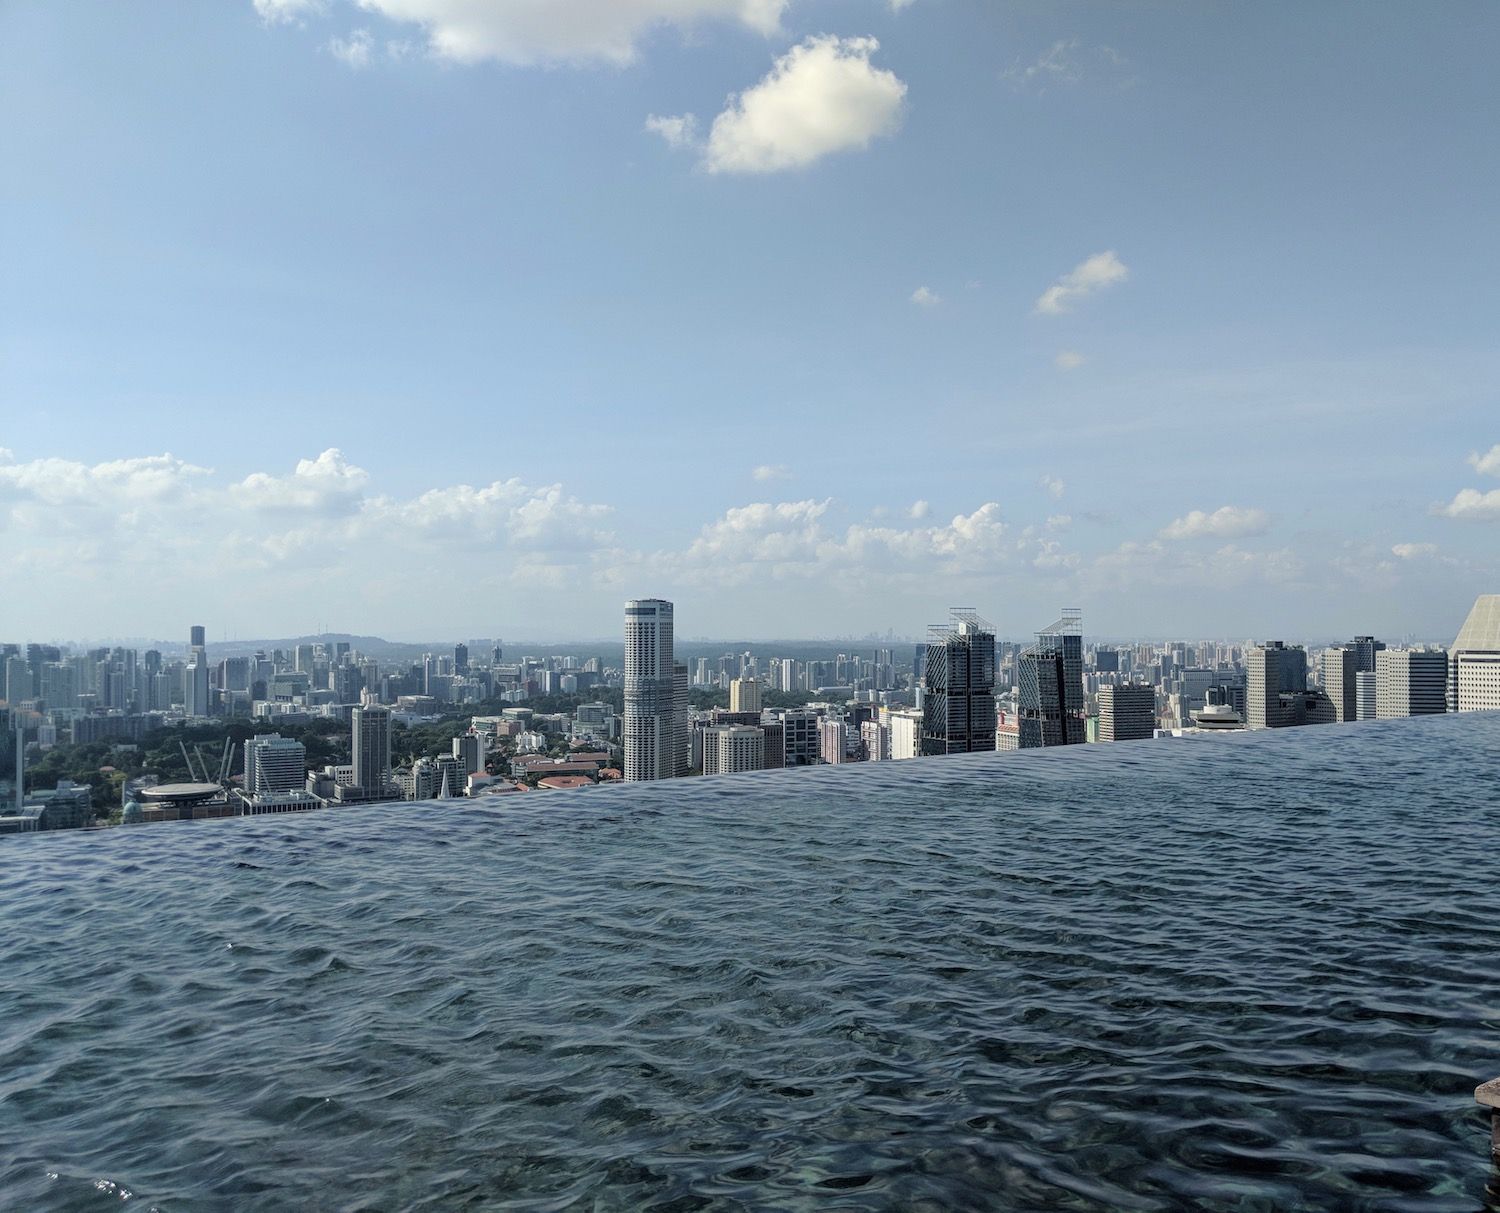 Marina Bay Sands famous infinity pool without people in it. boldlygotravel.com